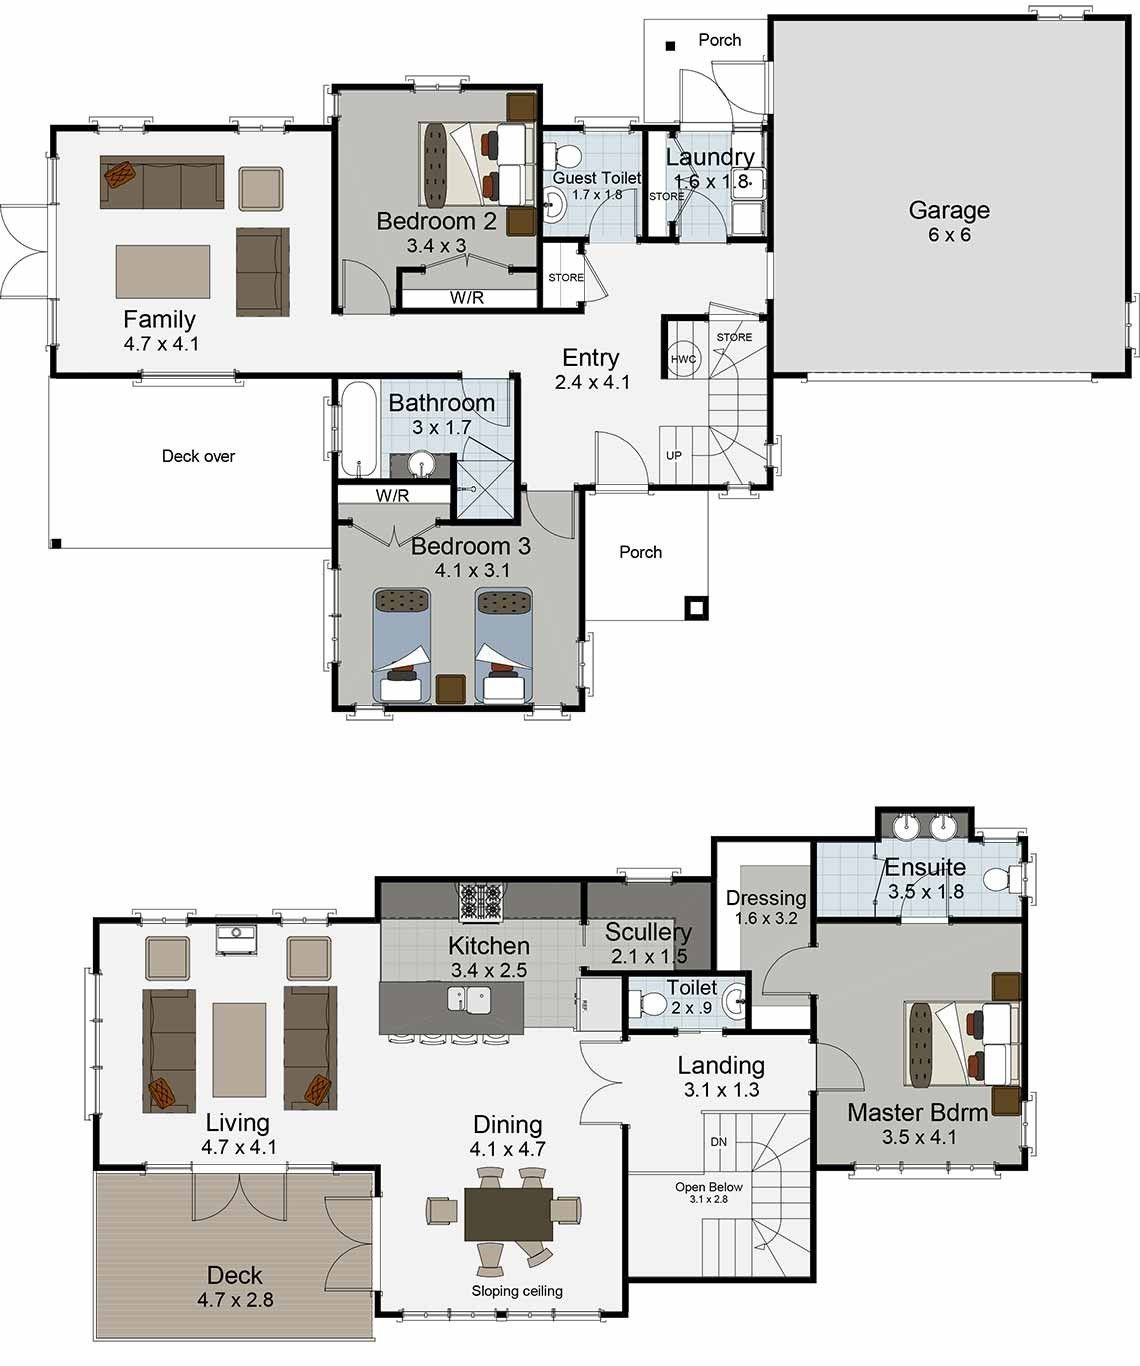 20 30 Home Plans Theworkbench Bedroom House Plans Two Story House Plans House Plans